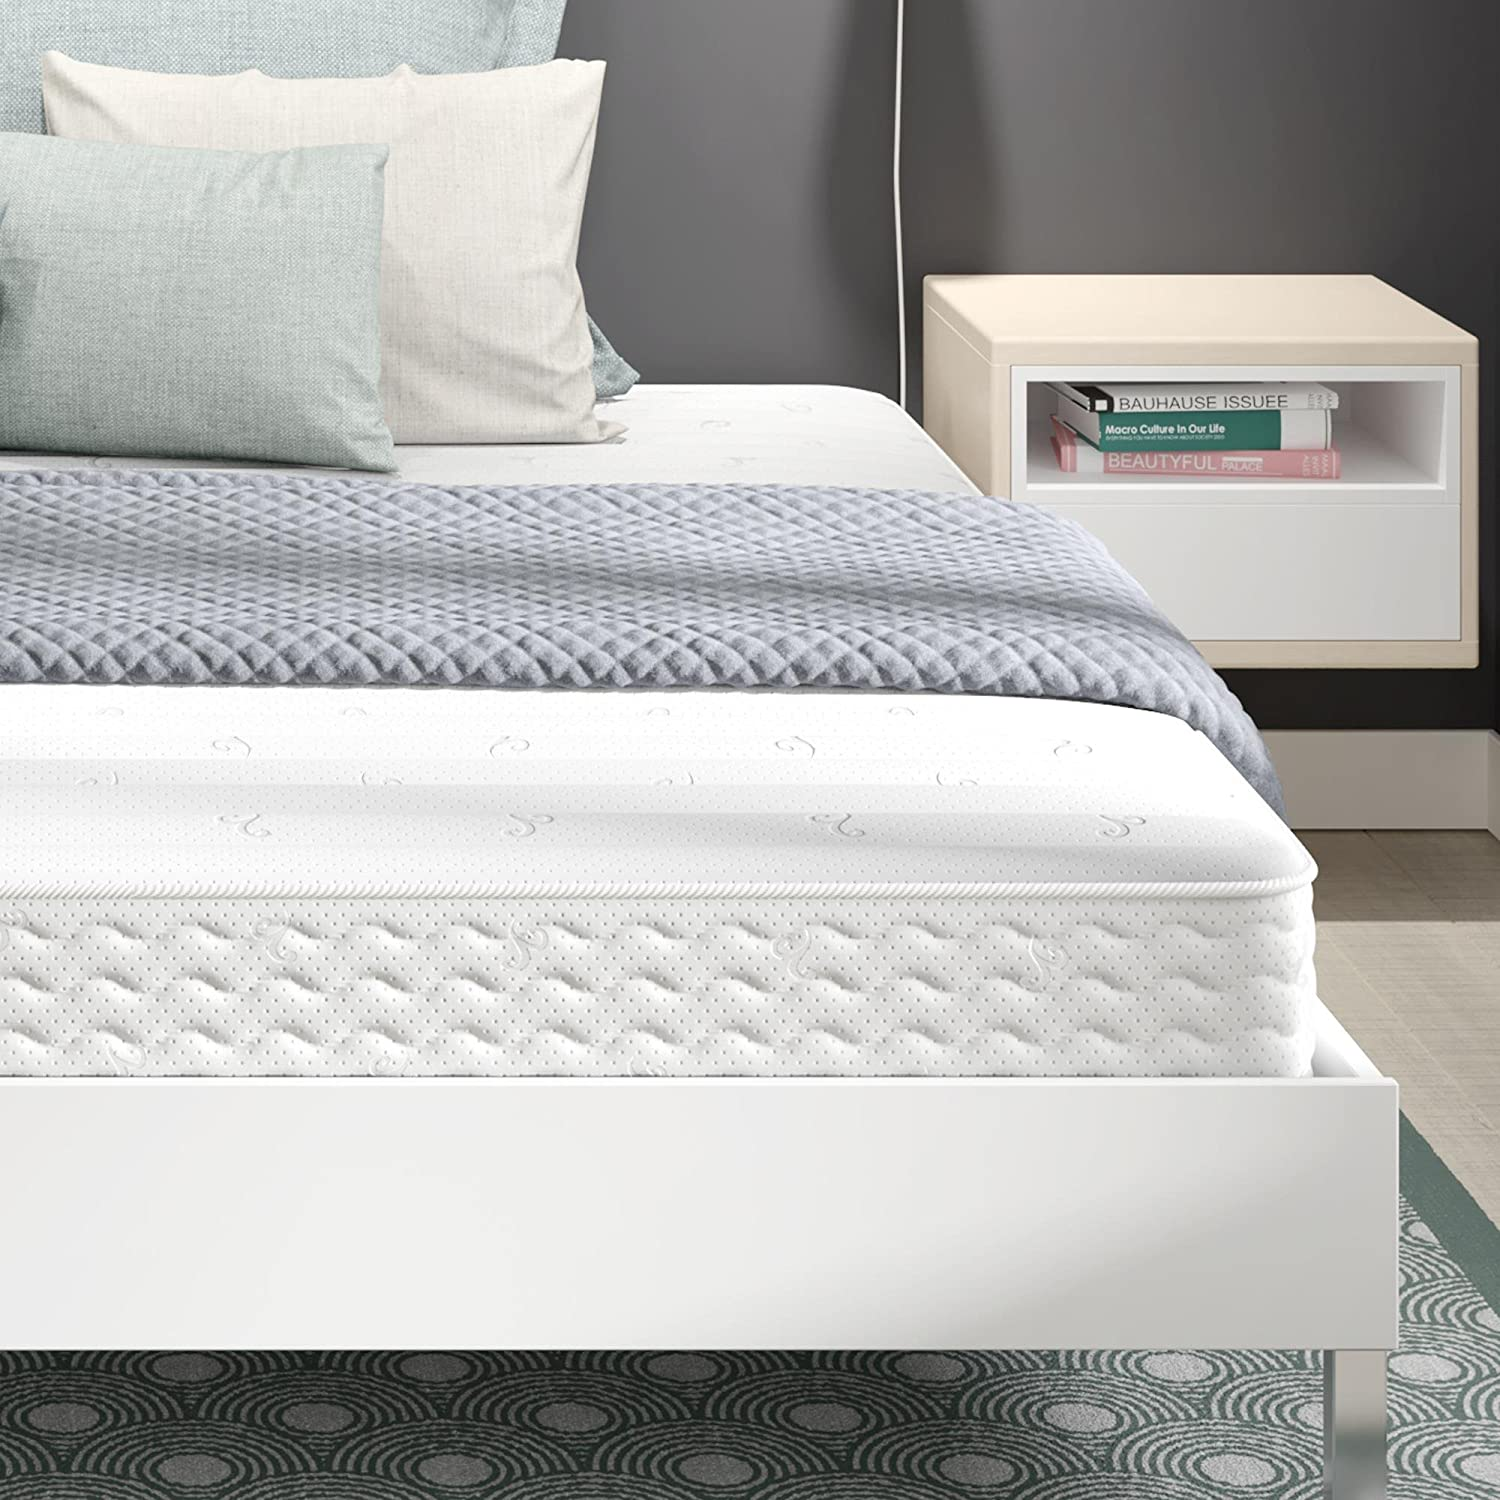 hd mattress the dump justice king super duty luxe innerspring